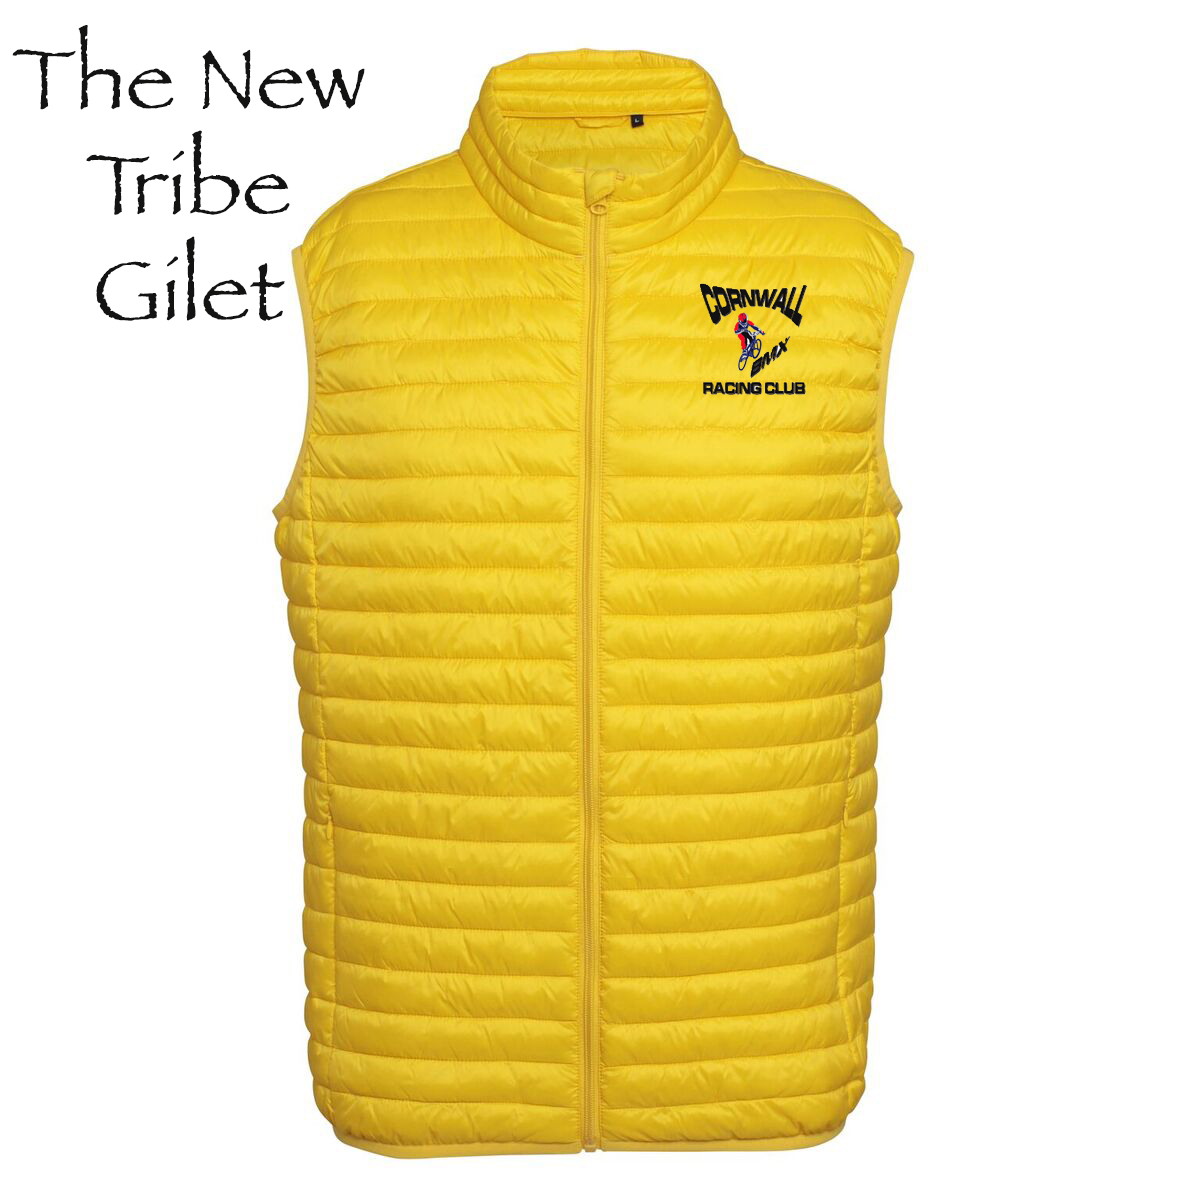 New for 2017 the Tribe Gilet